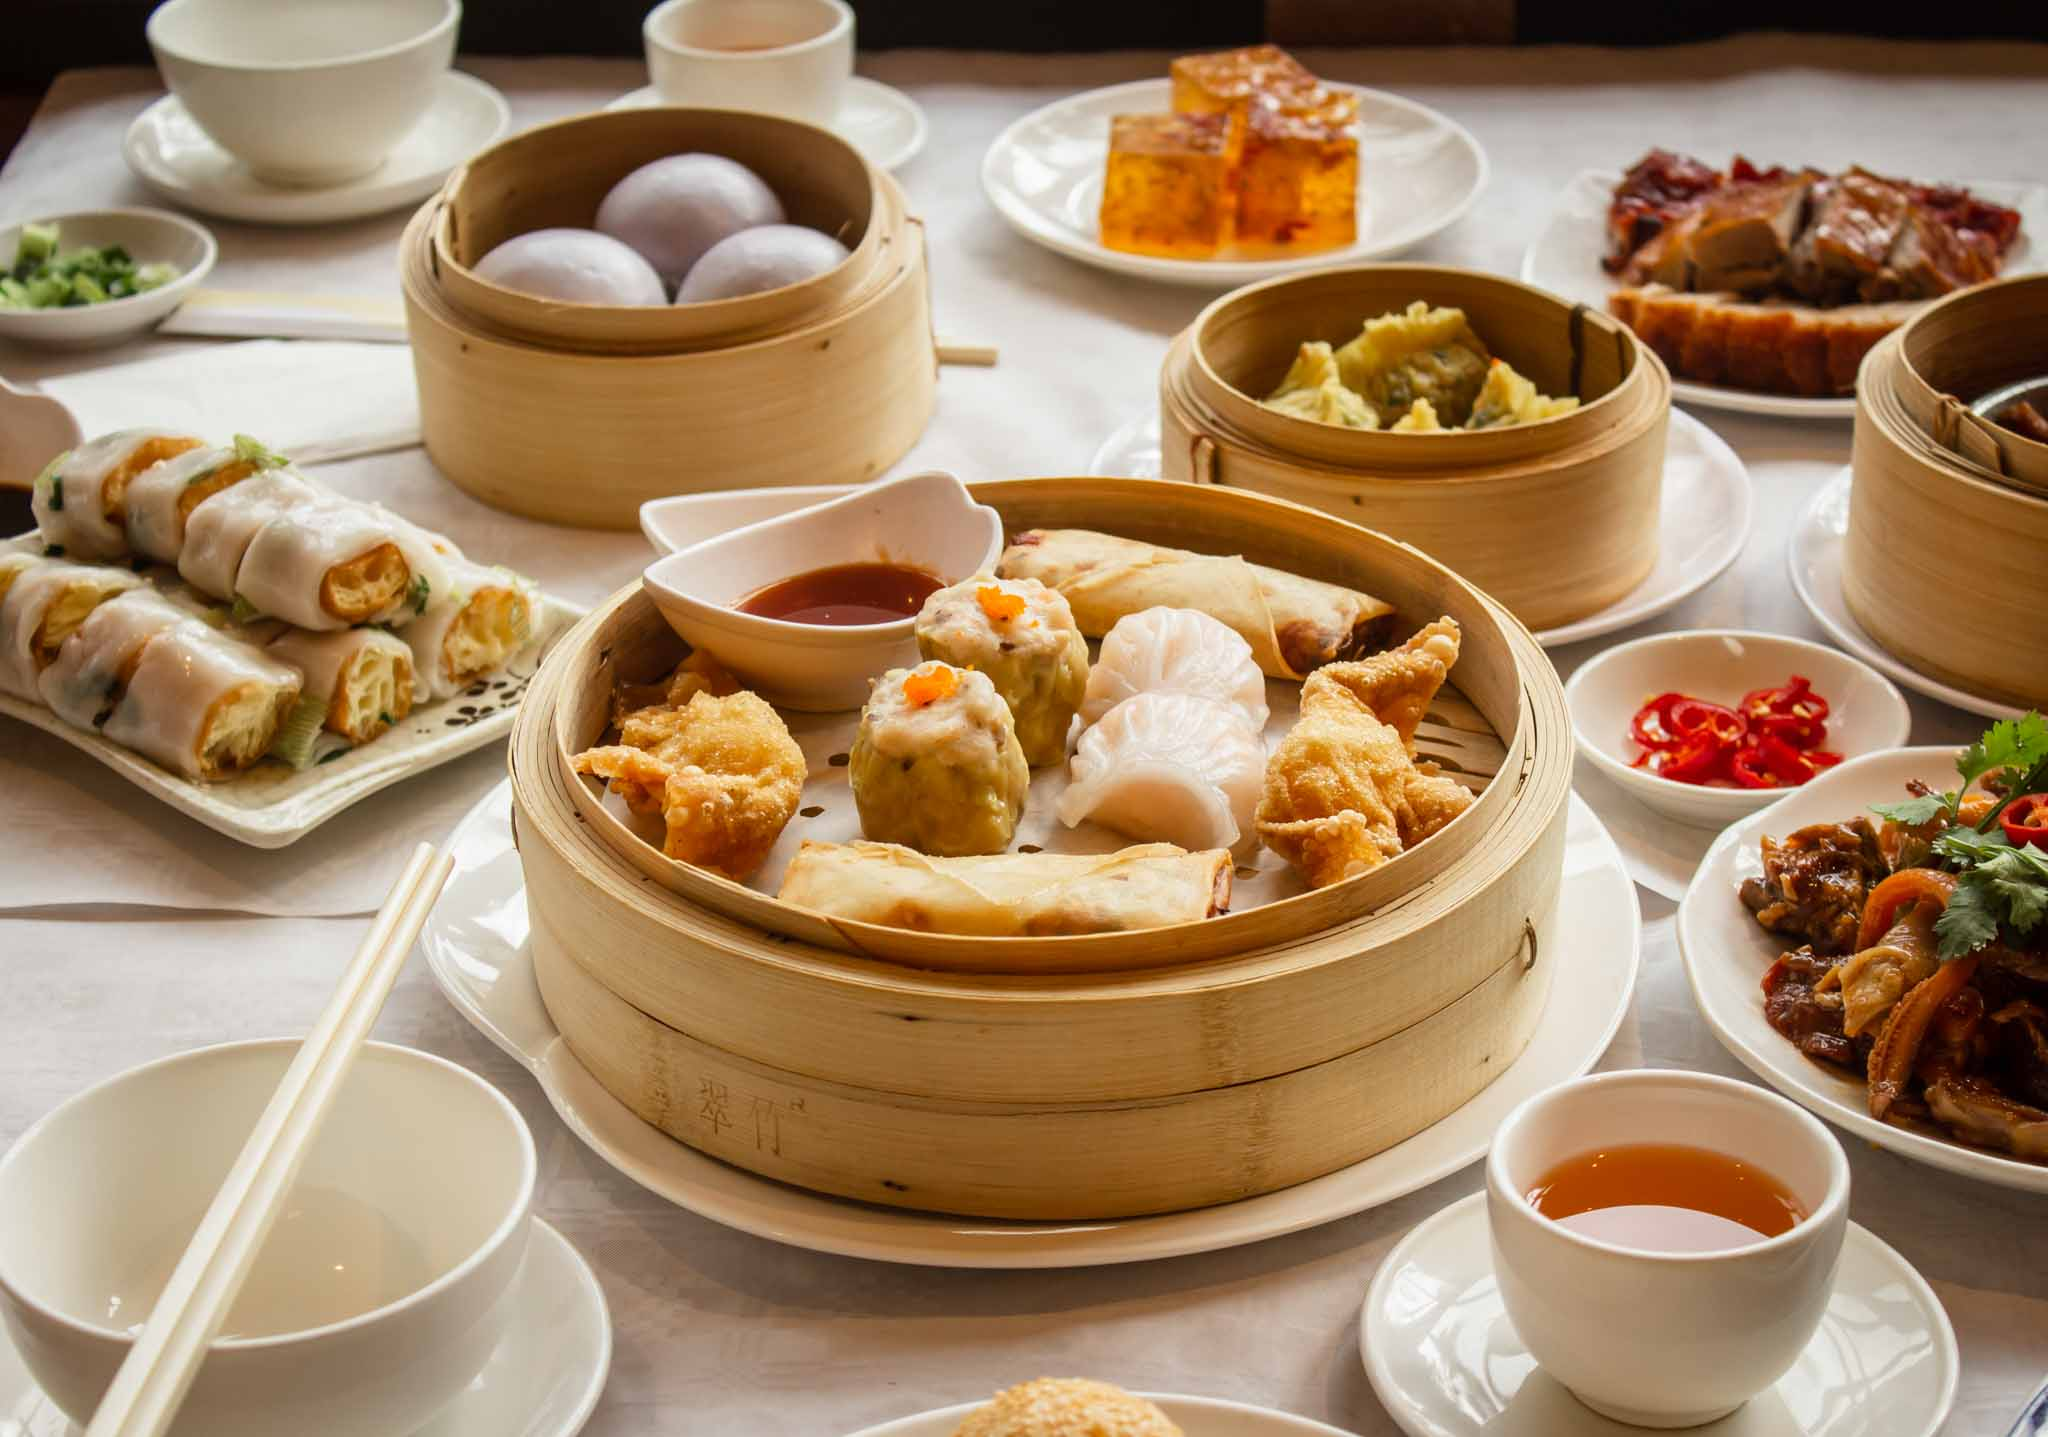 Traditional Chinese dish on the table of a restaurant